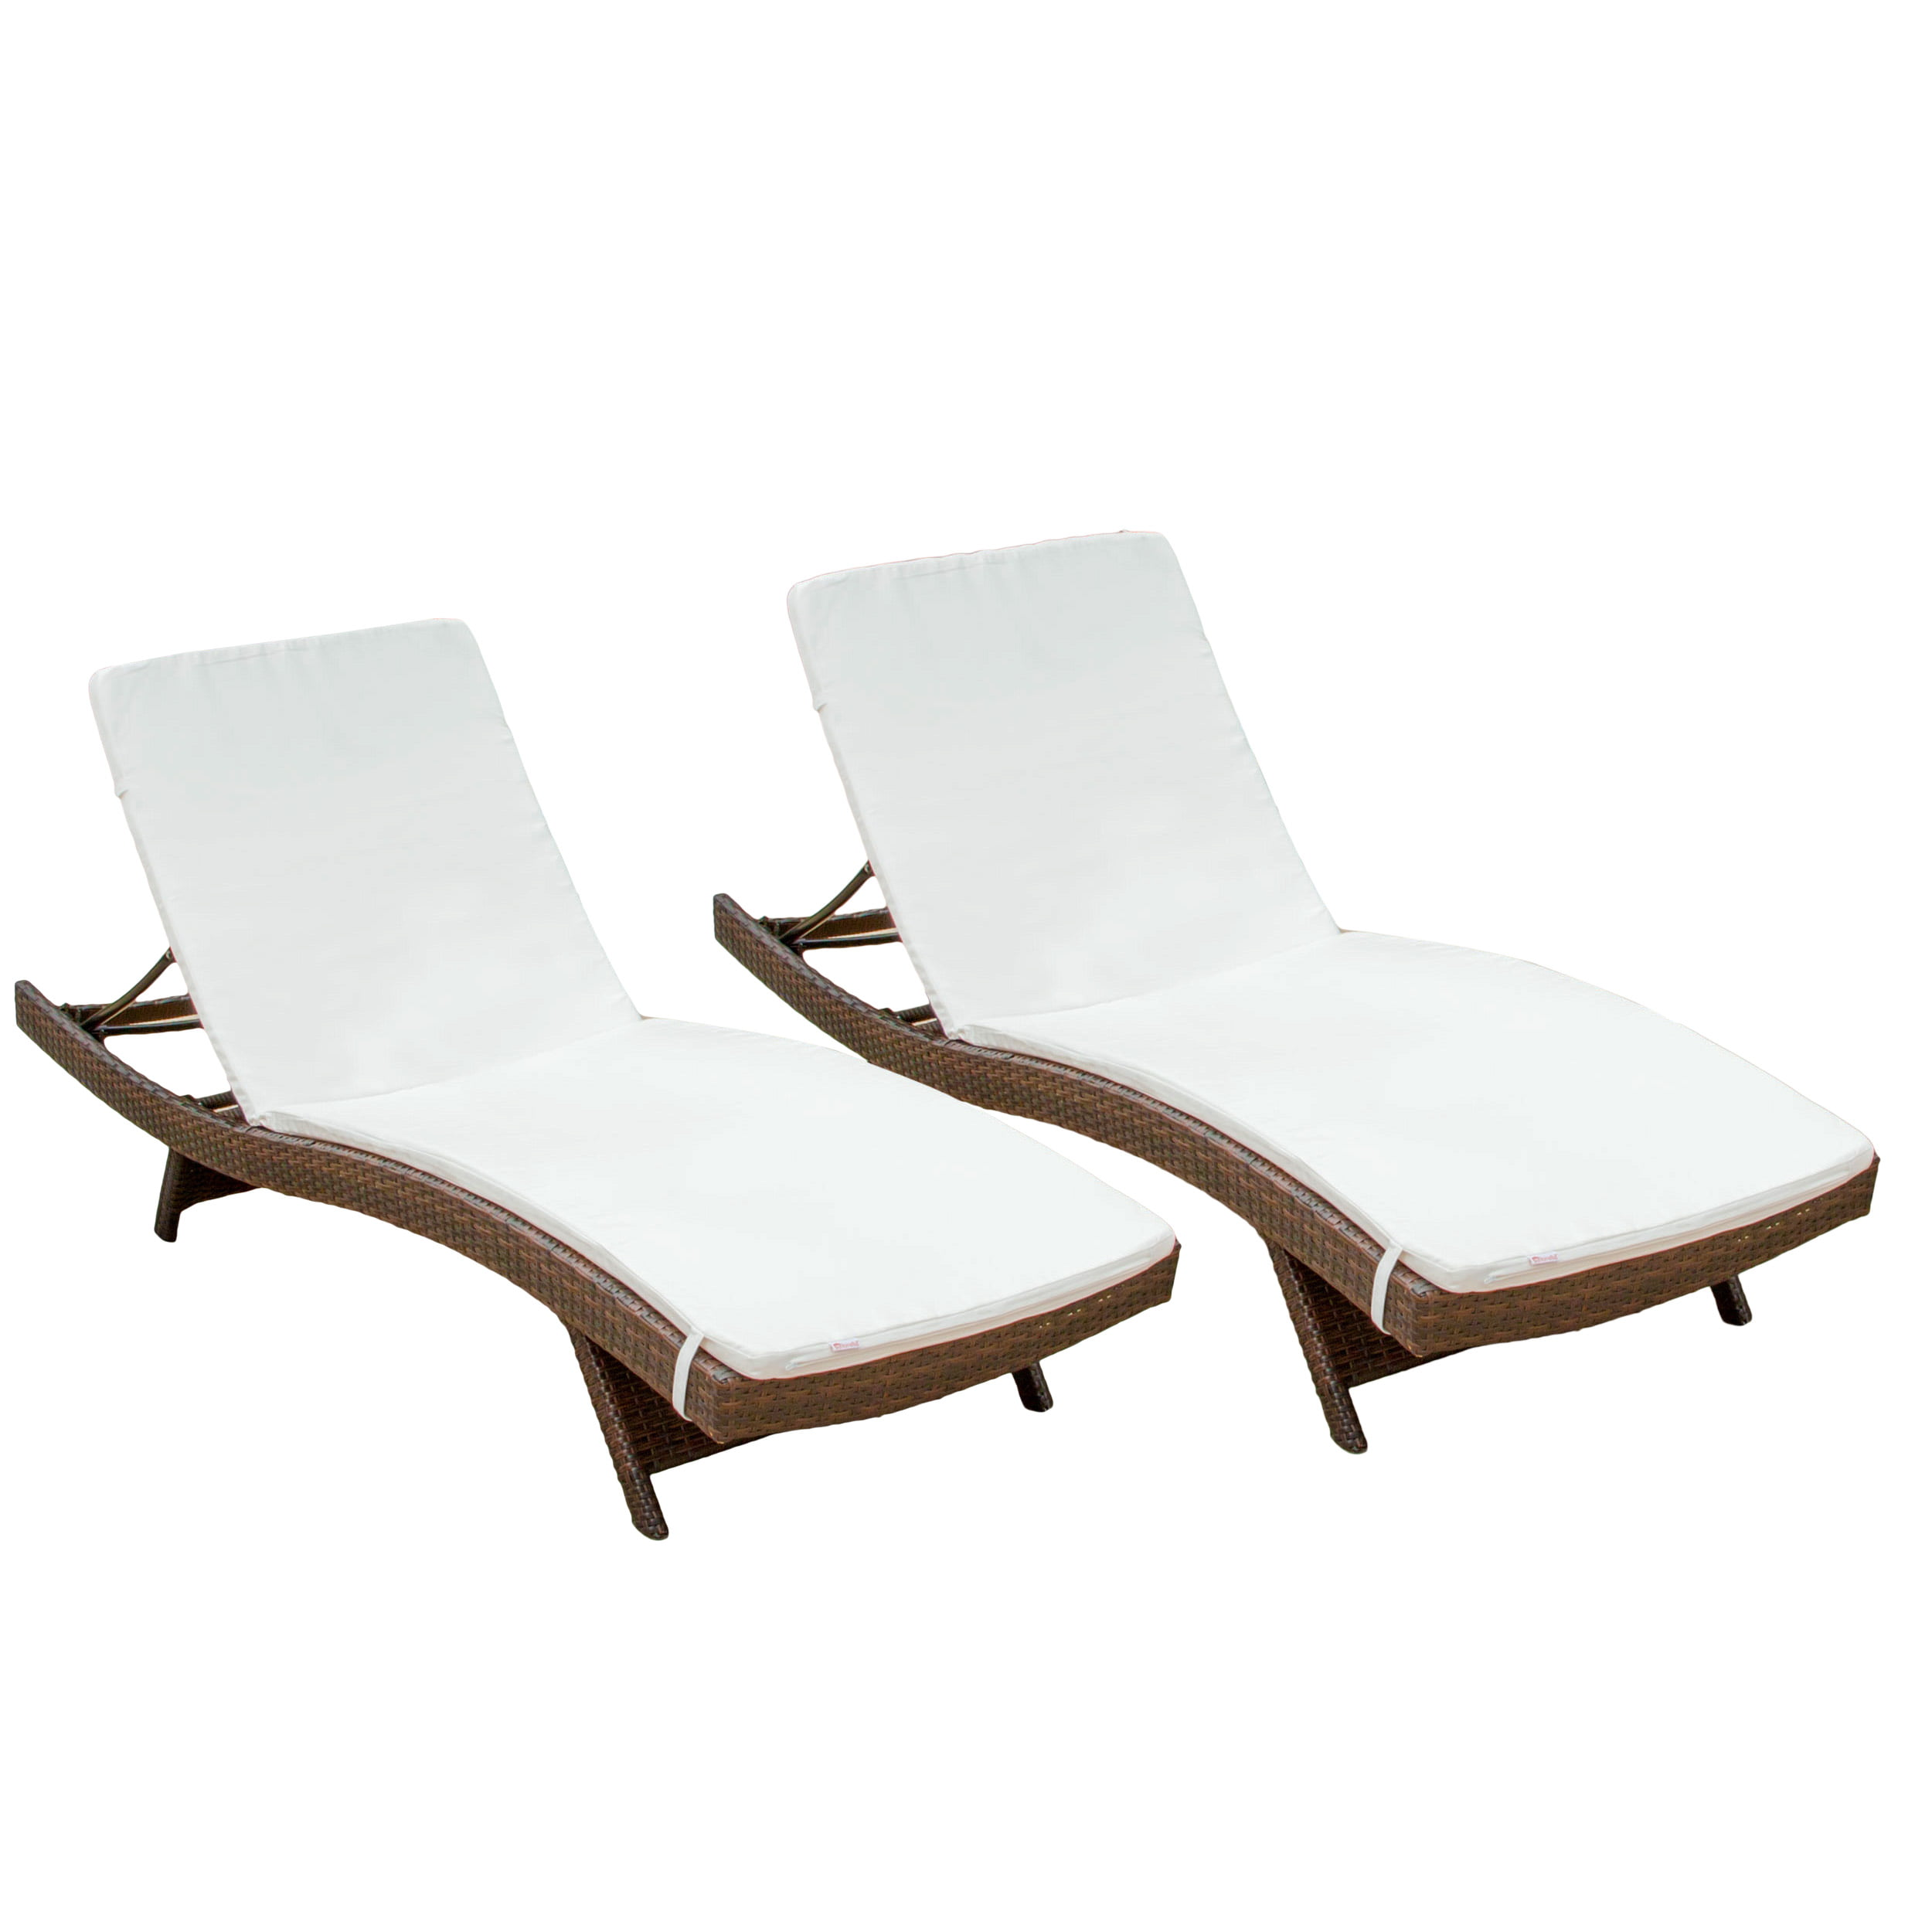 Outdoor Brown Wicker Adjustable Chaise Lounge with Cushions (Set of 2) by NFusion